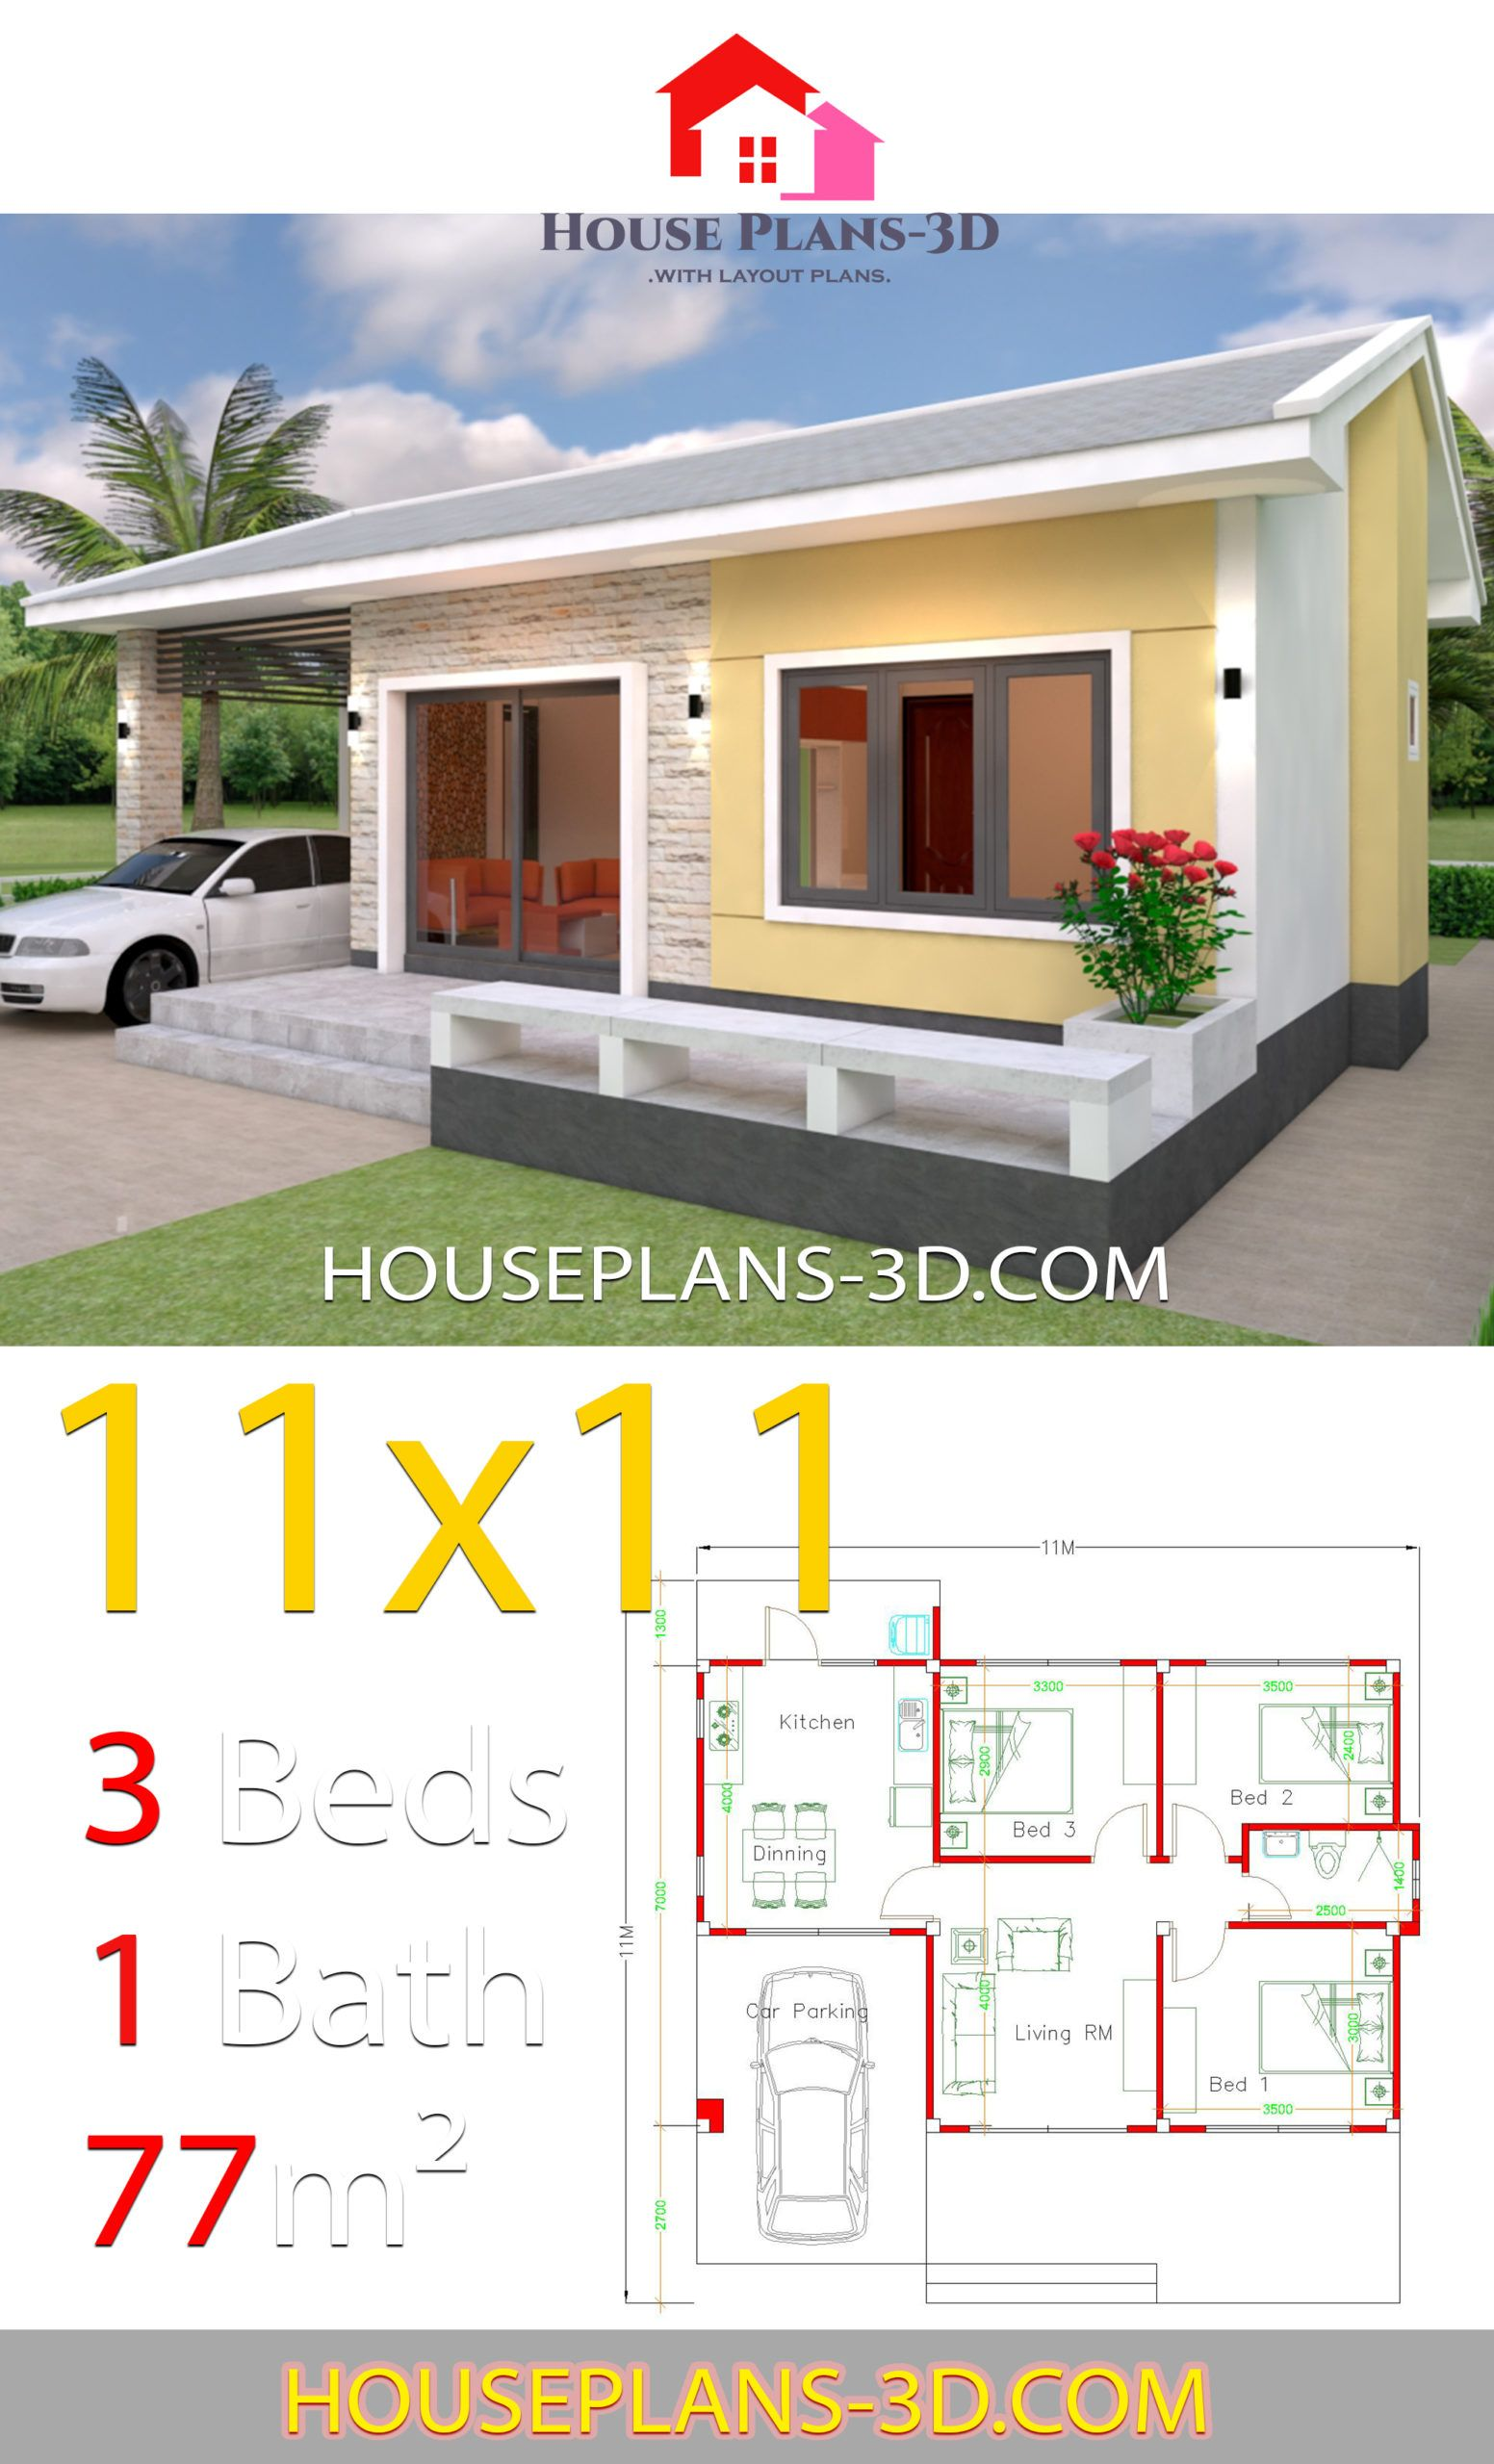 Simple House Design Plans 11x11 With 3 Bedrooms House Plans 3d In 2020 Simple House Design Simple House Home Design Plans